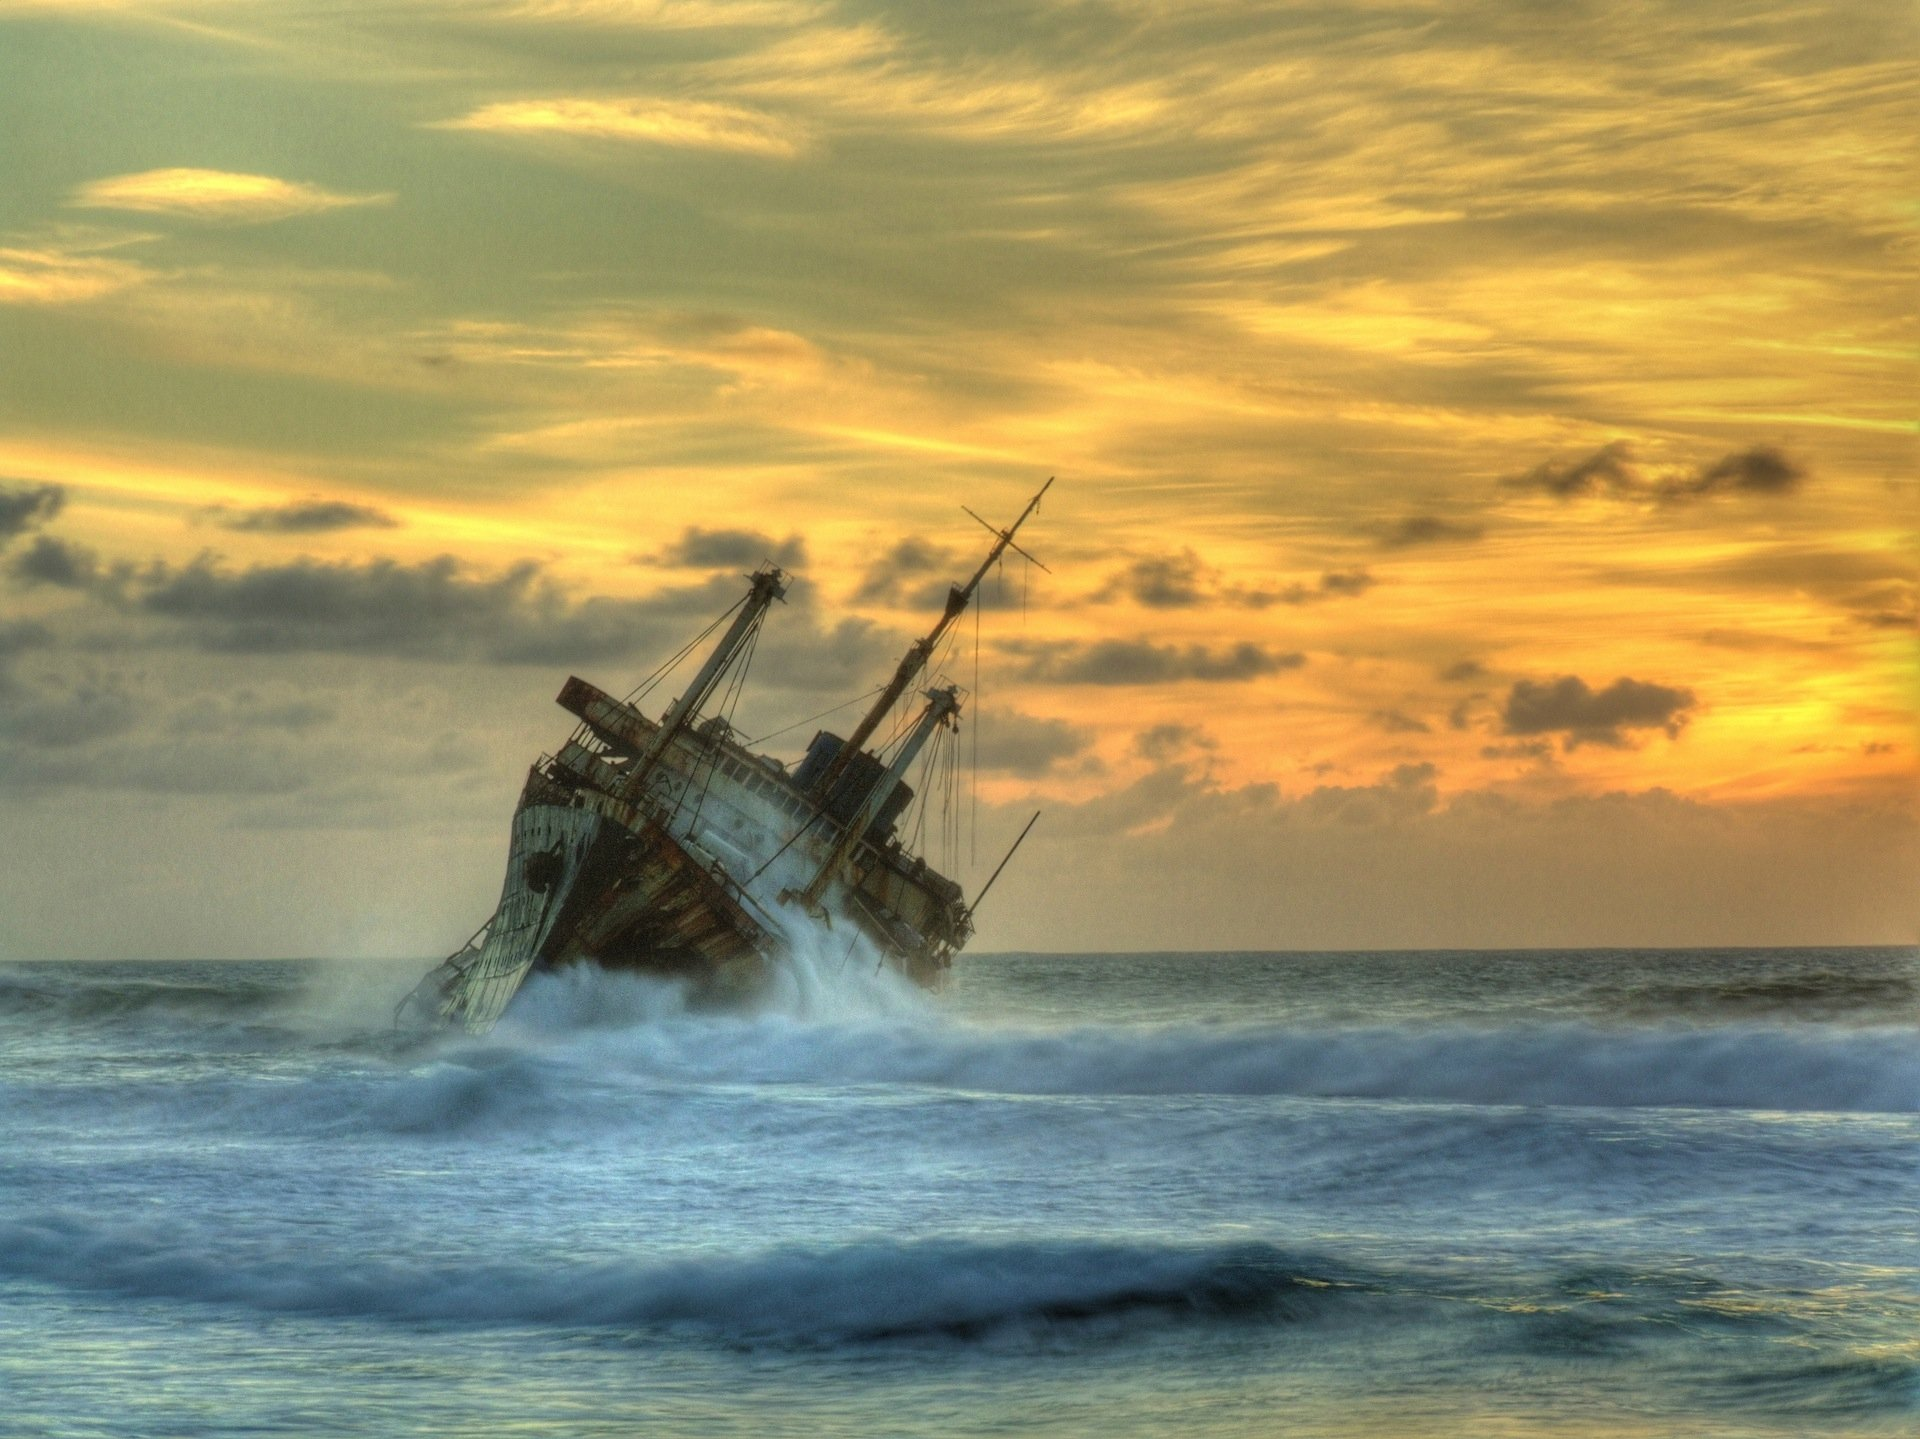 Shipwreck American Star HD Wallpaper Background Image 1920x1439